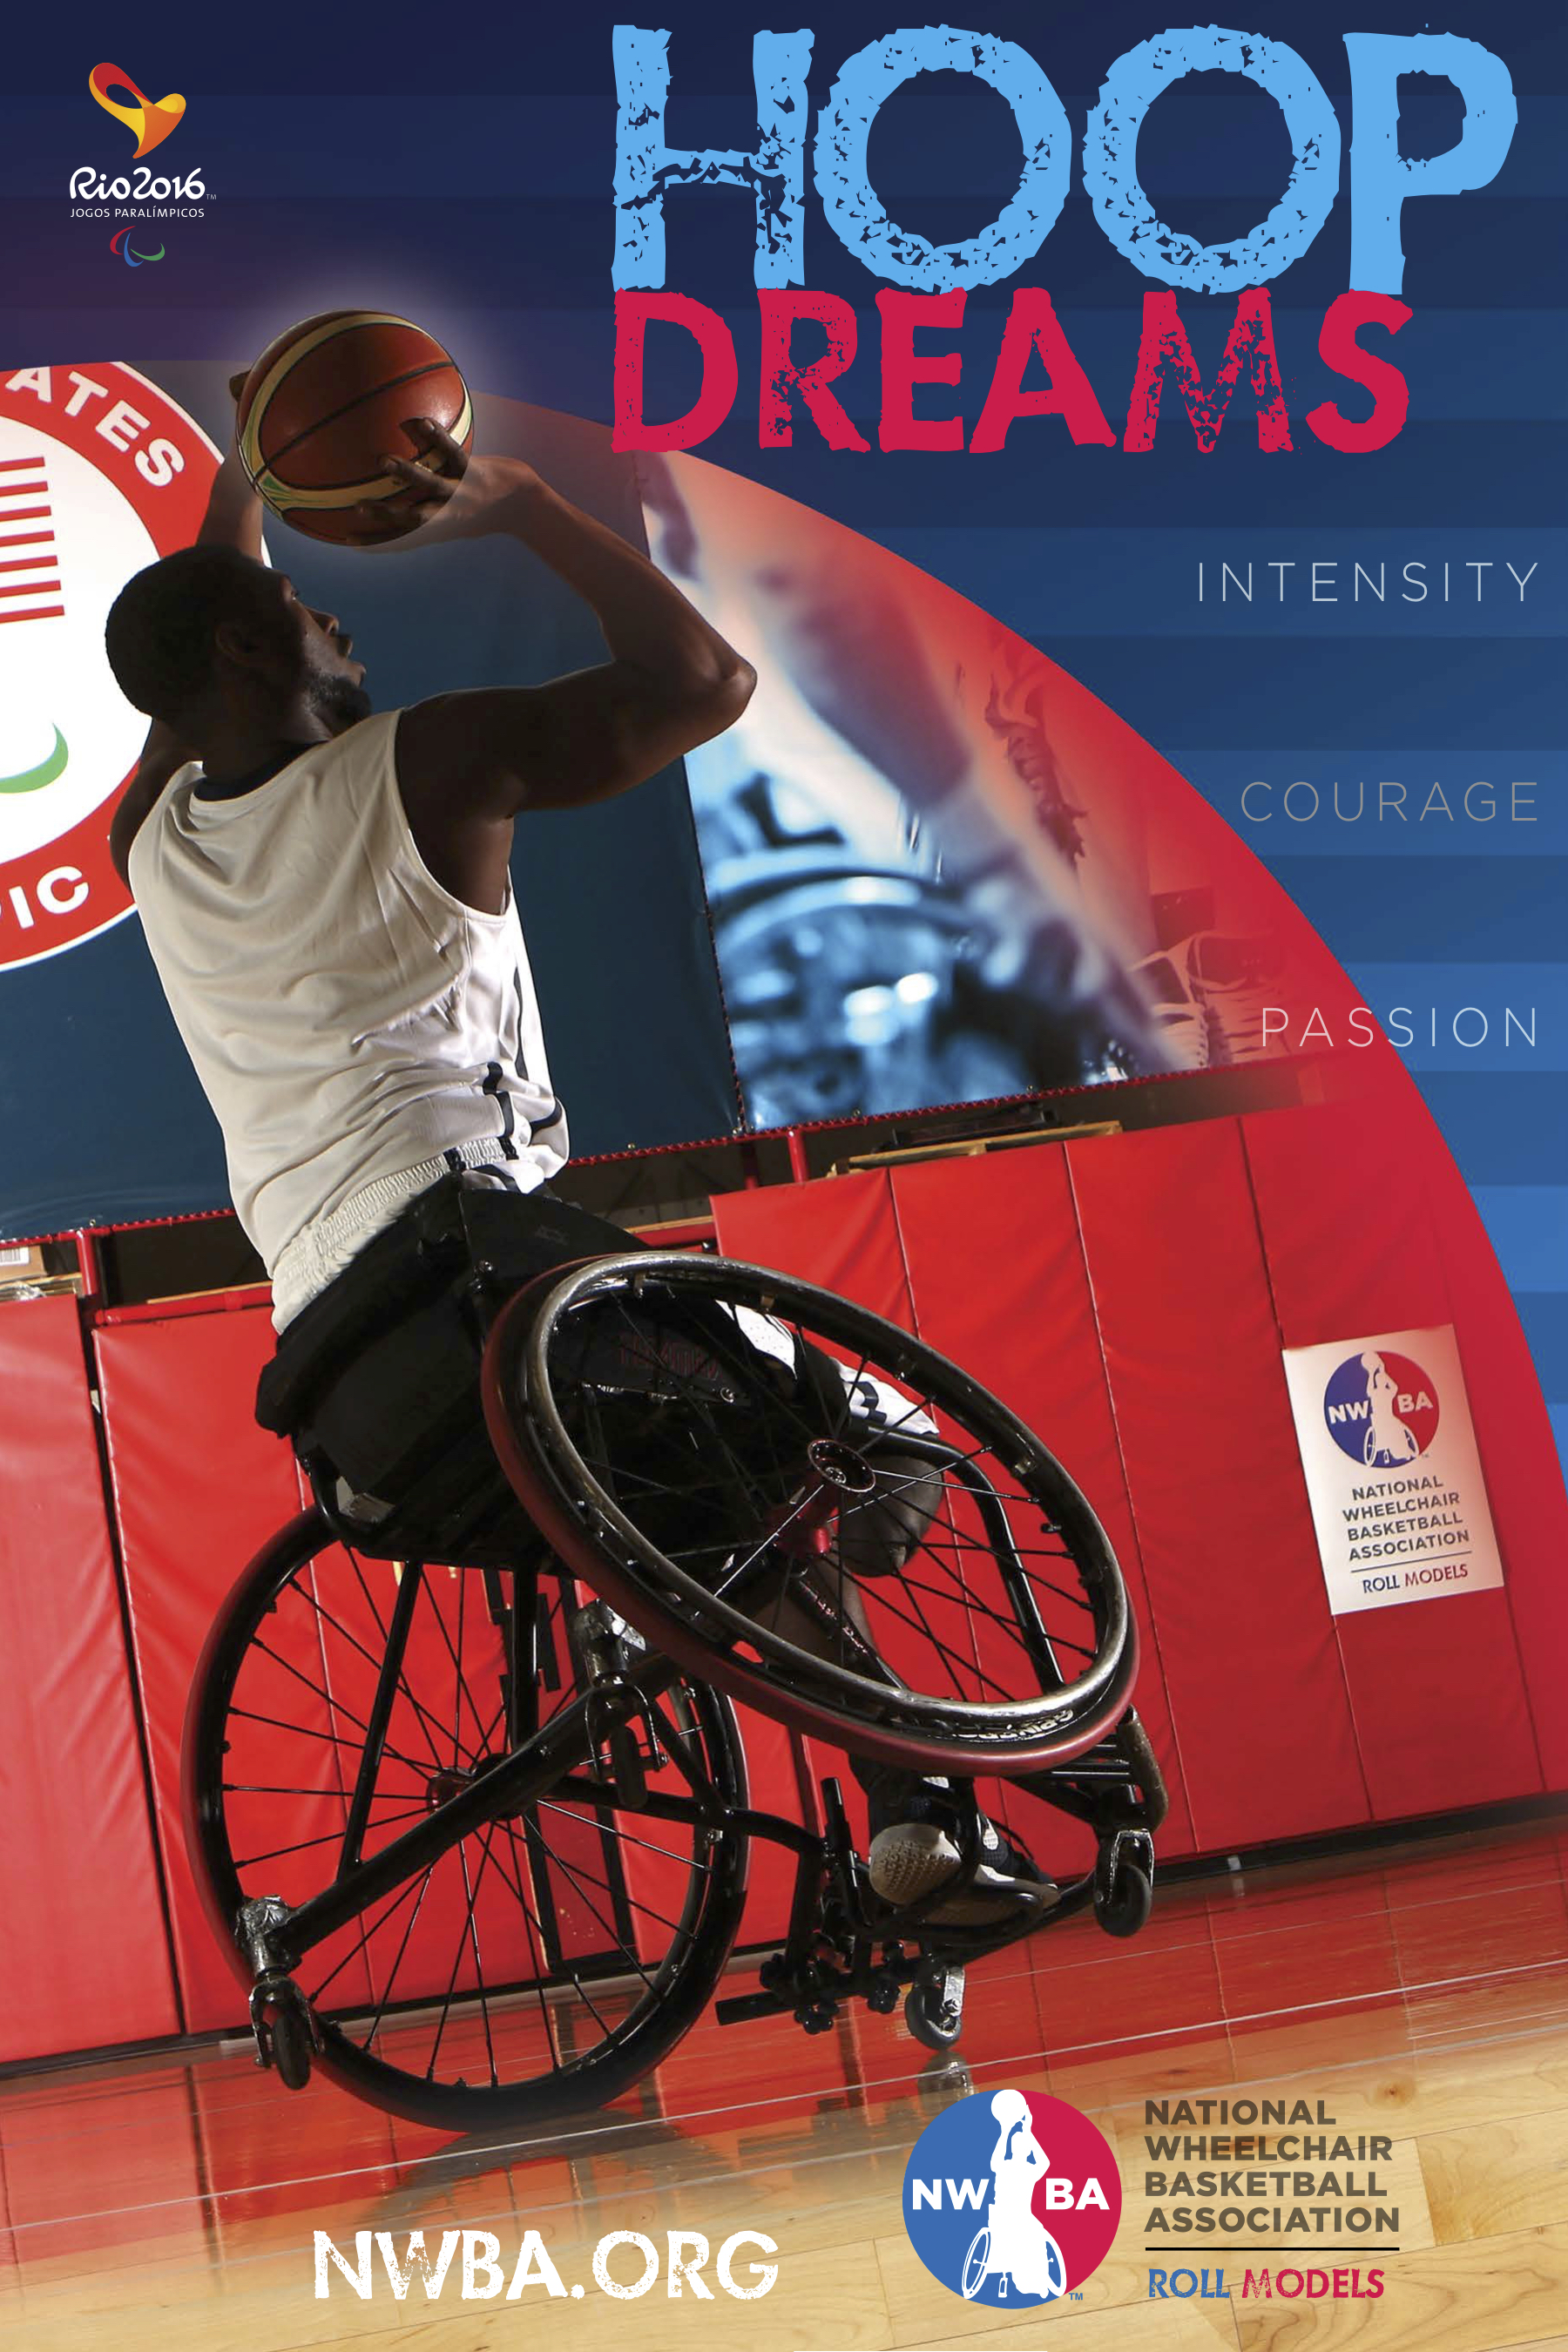 "National Wheelchair Basketball Association, summer 2016 In summer 2016, then interim Executive Director Jim  Scherr and  current Executive Director Anthony  Bartkowski sought  to re-define the way Paralympic sport was branded and positioned. KOM Sports Marketing was hired to re-brand, re-position, and build organizational and event campaigns going into the 2016 Rio Paralympic Games. The campaigns which included various videos and  static images featured team members and KOM created several videos and static executions. The organizational campaigns: ""Roll with U.S."" and ""Roll Models"". The Rio Games campaign: ""Hoop Dreams"".  The campaigns proved good mojo as Team USA ended winning historic  gold medals for men and women."